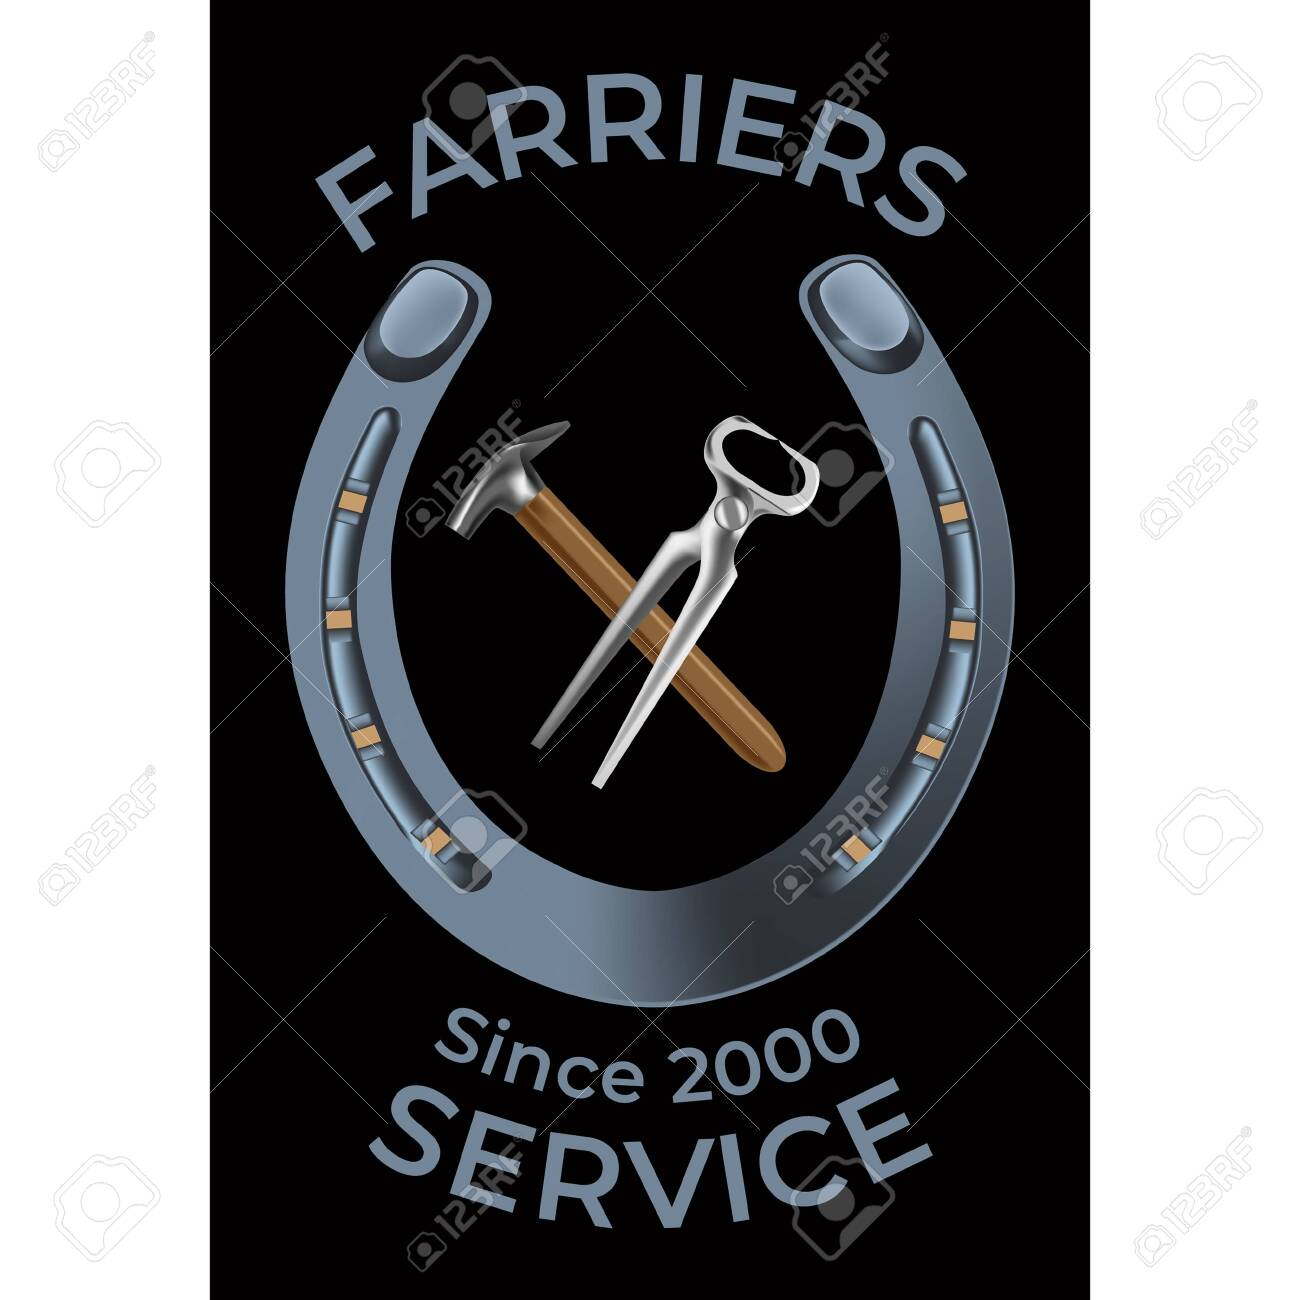 Farriers services in realistic style  Nippers, shoe and hammer